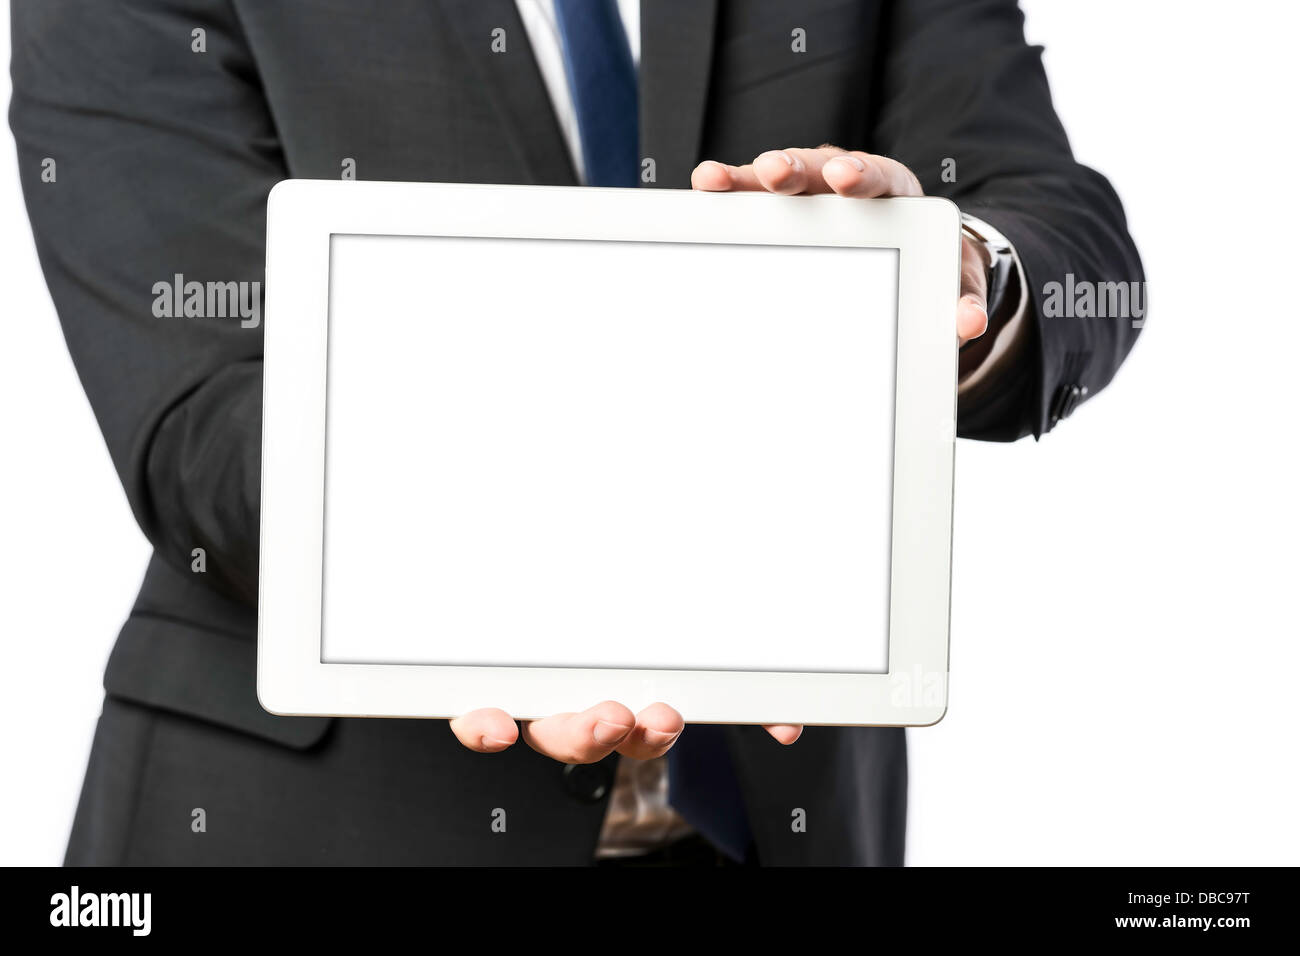 business man in dark suit holds a tablet computer, isolated on white background - Stock Image